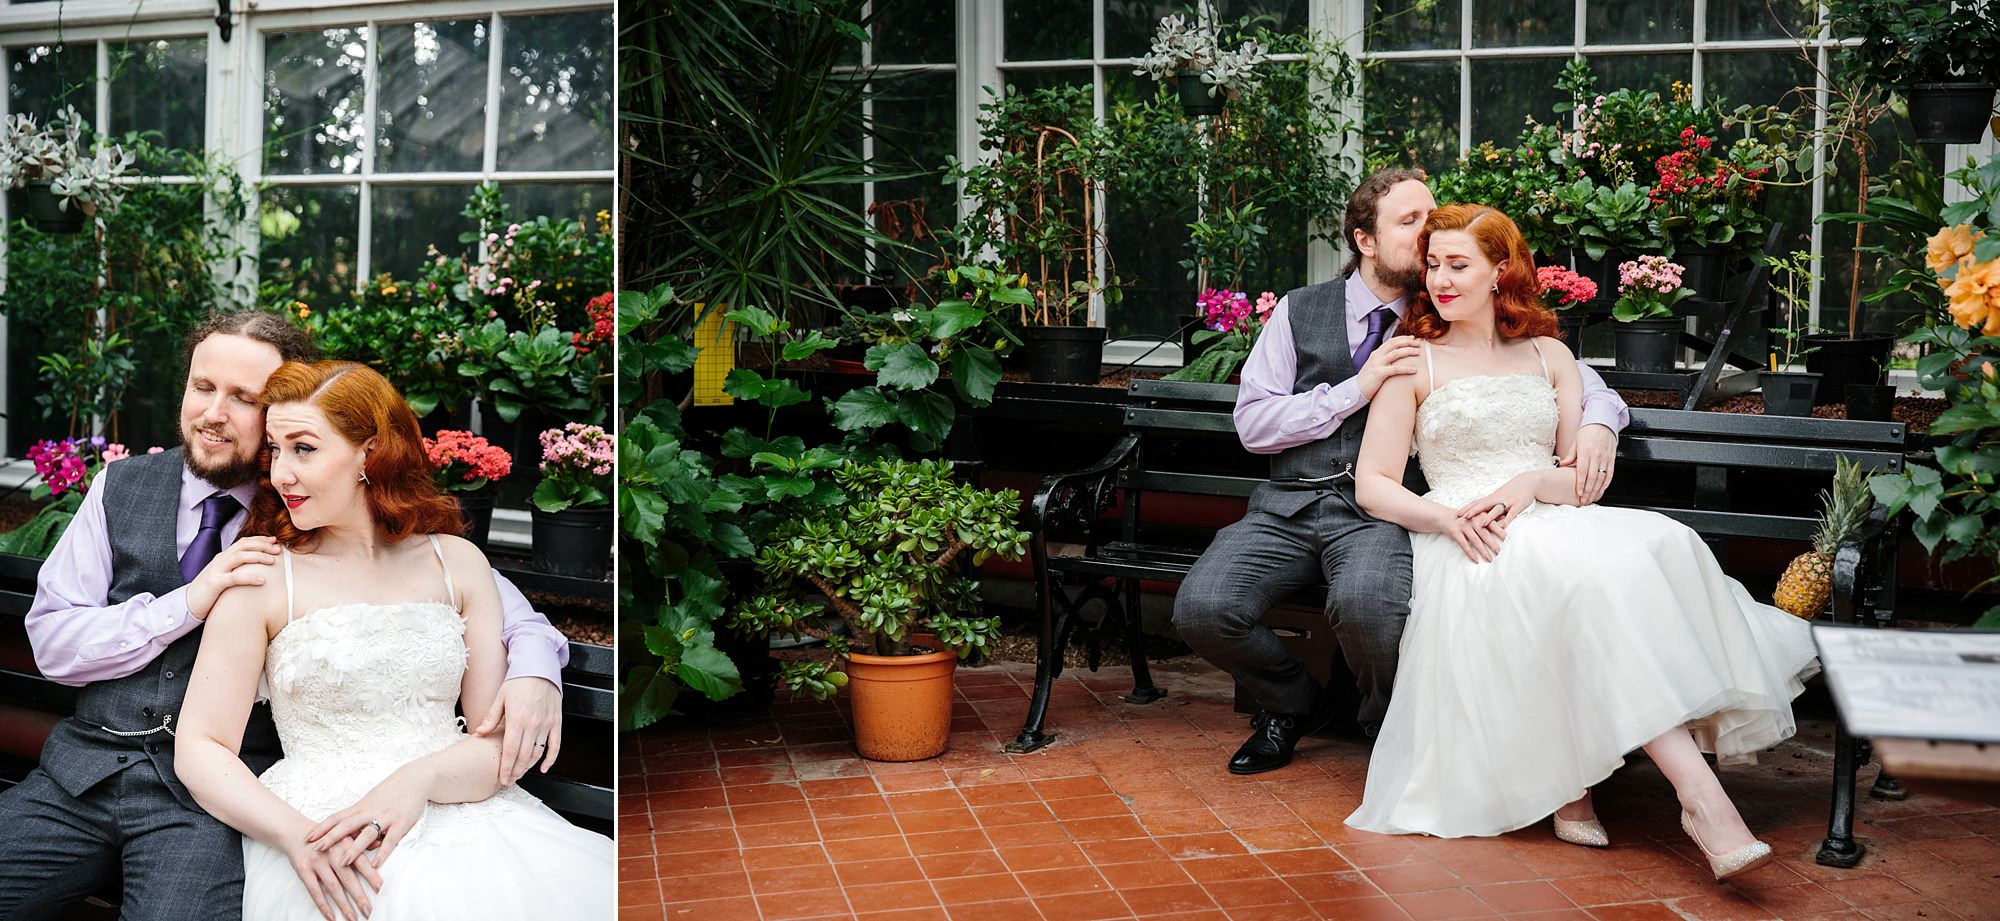 tropical wedding shoot portrait of bride and groom sat together in tropical conservatory